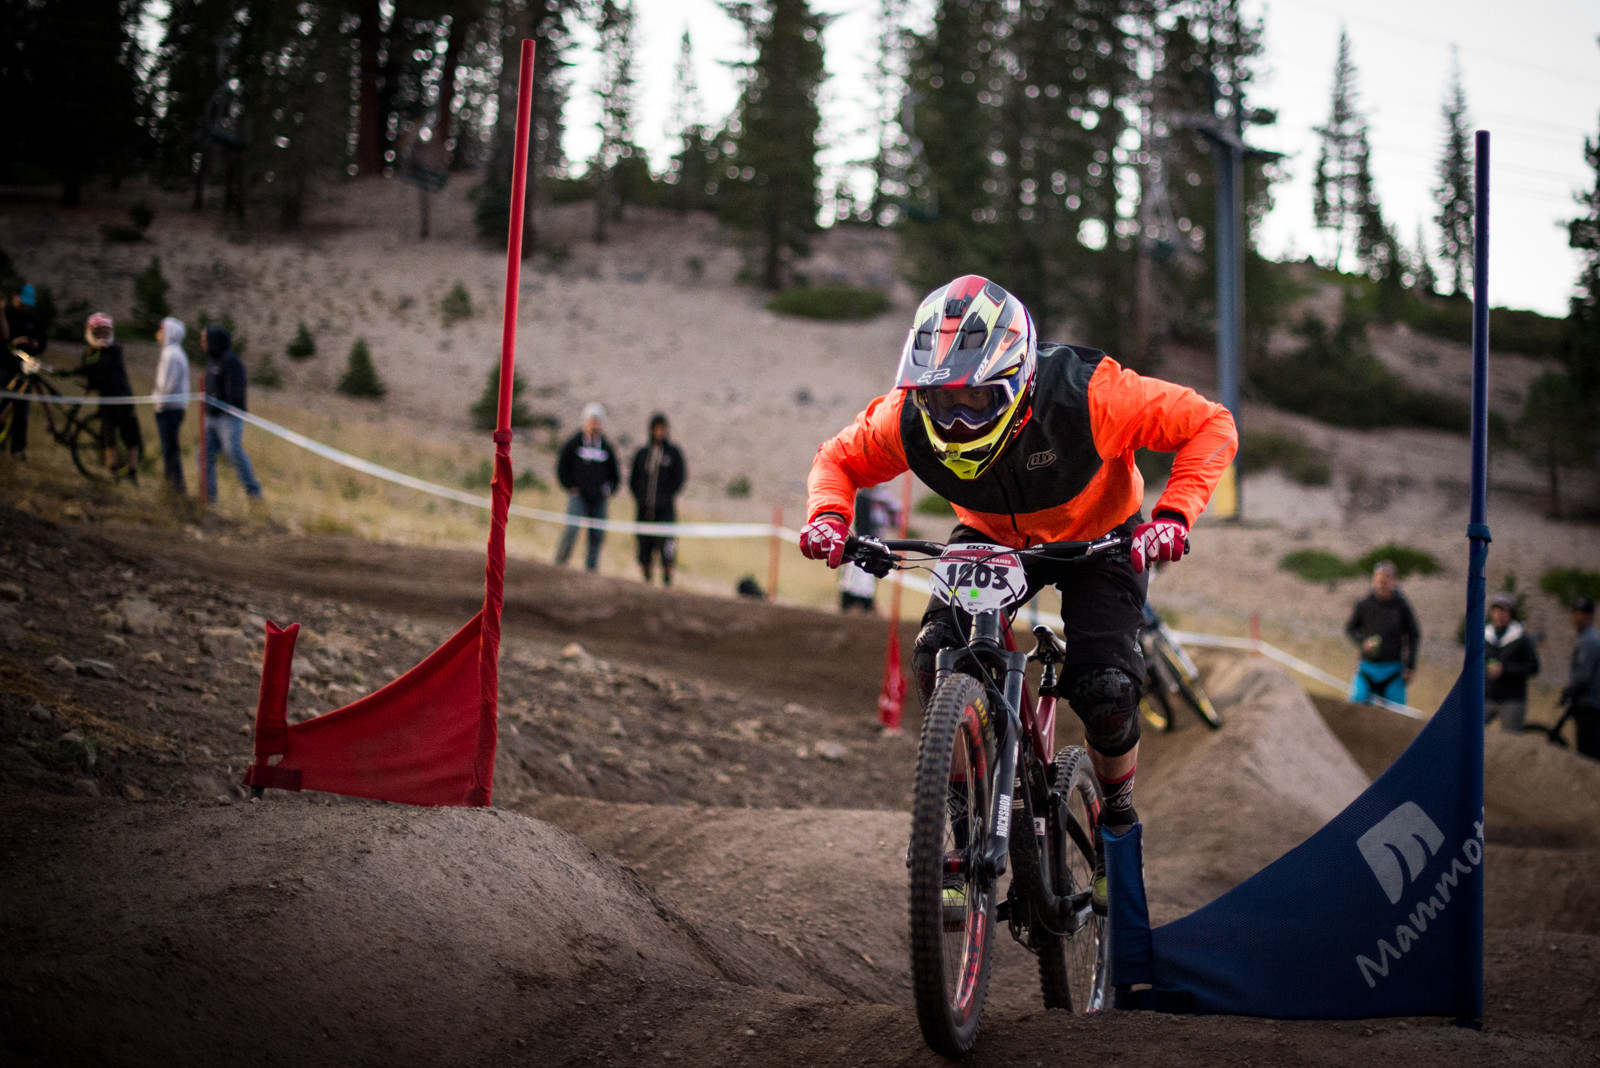 Alex Mcelyea - Mammoth Mountain Kamikaze Bike Games Dual Slalom - Mountain Biking Pictures - Vital MTB